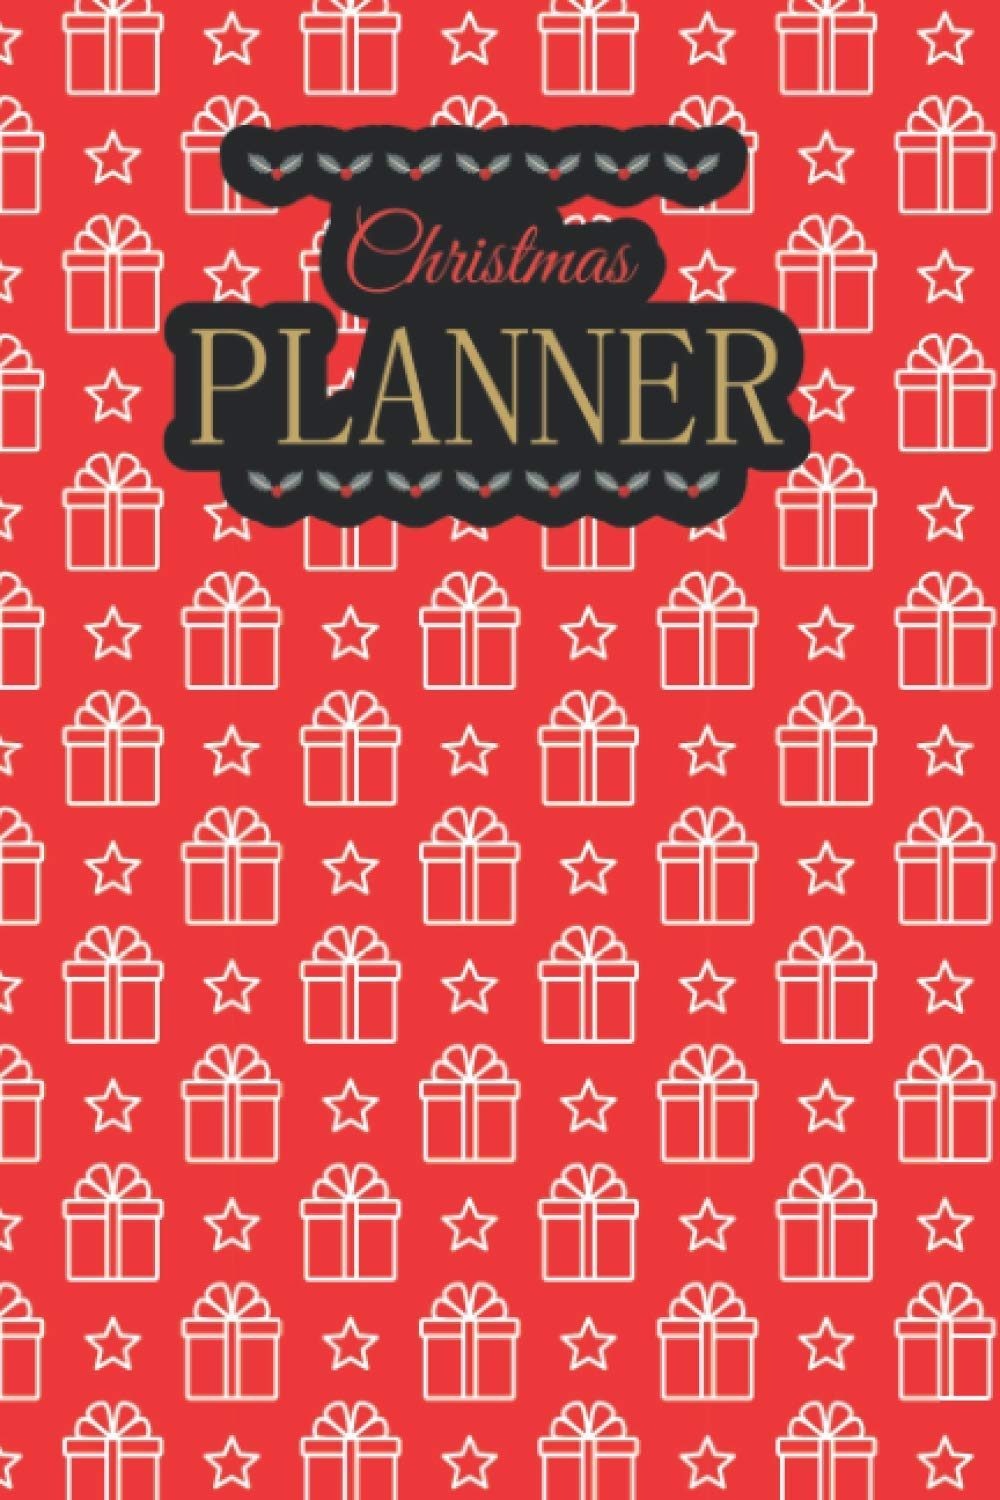 Christmas Planner Christmas Holiday Planner And Organizer To Do Lists Gift Ideas Weekly Planner Gift Check List Cards Publications James G Burgess Cm 9798695563207 Amazon Com Books